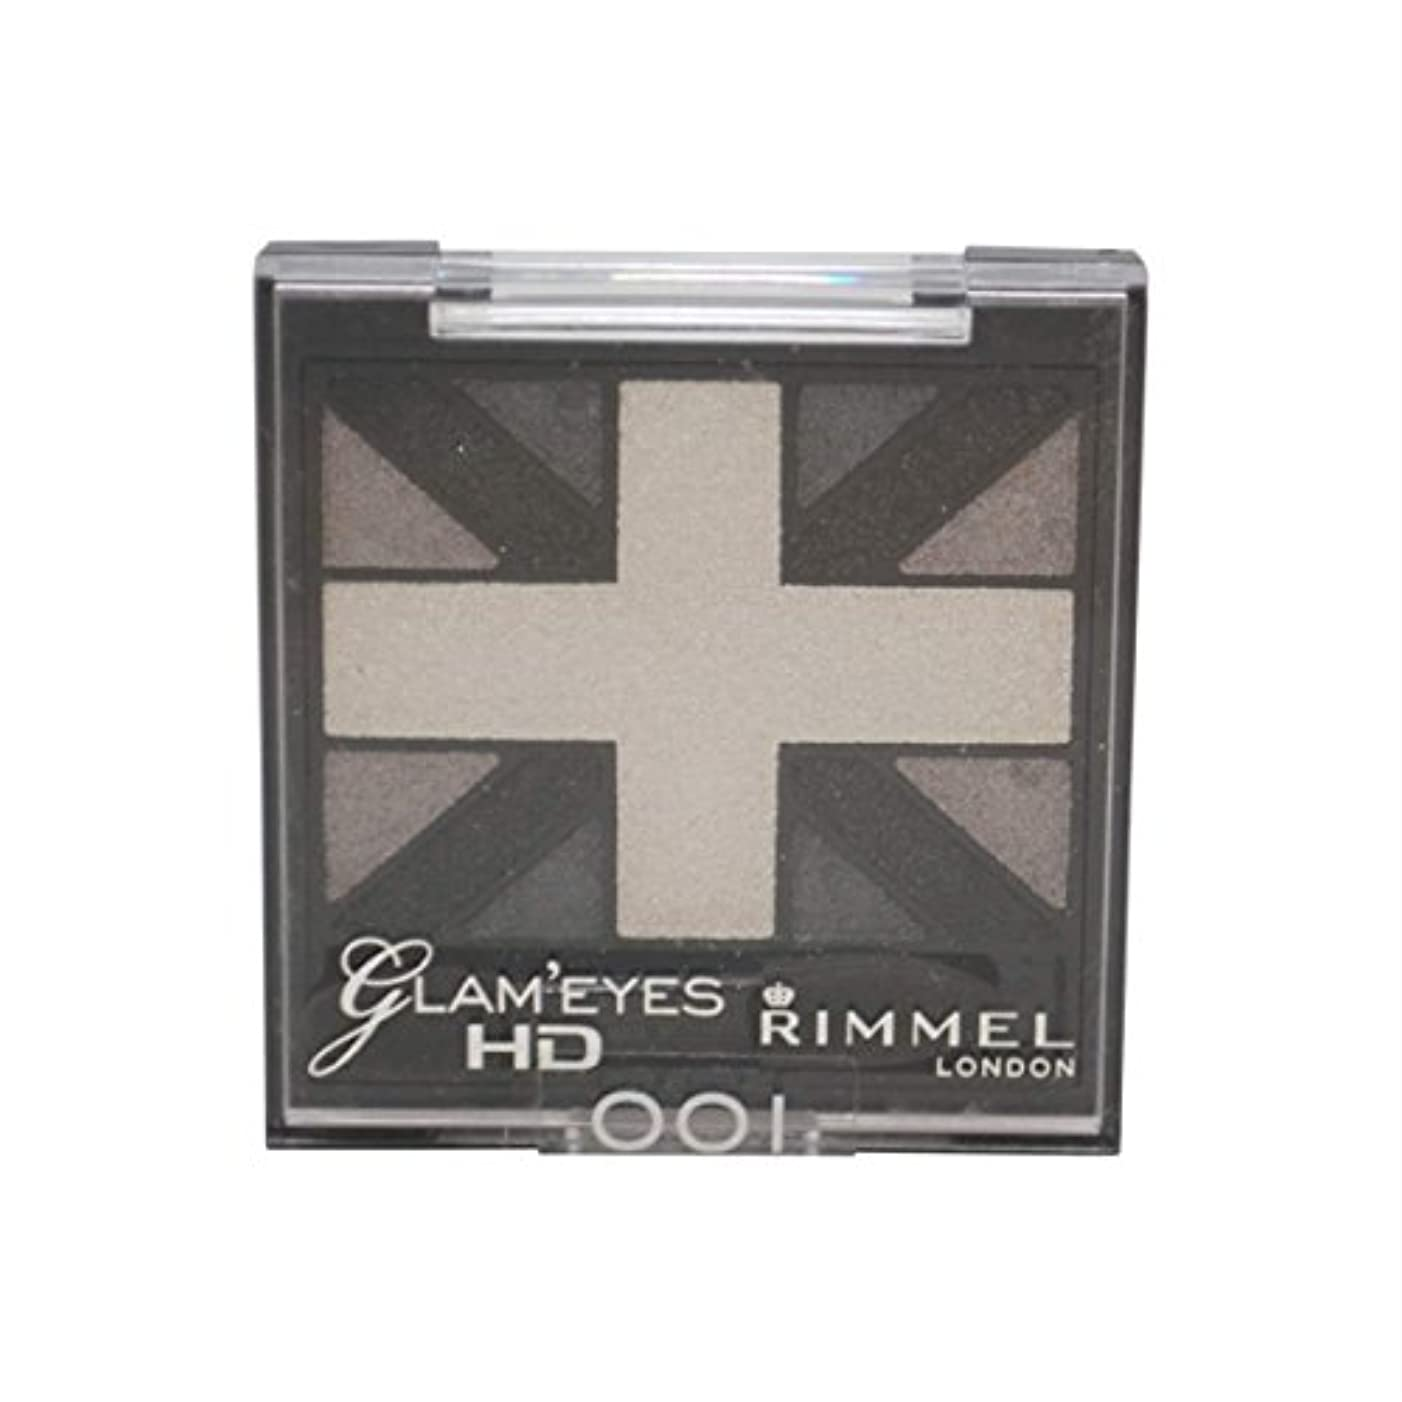 手のひら許容スーツRIMMEL LONDON Glam'Eyes HD Eyeshadows Black Cab (並行輸入品)